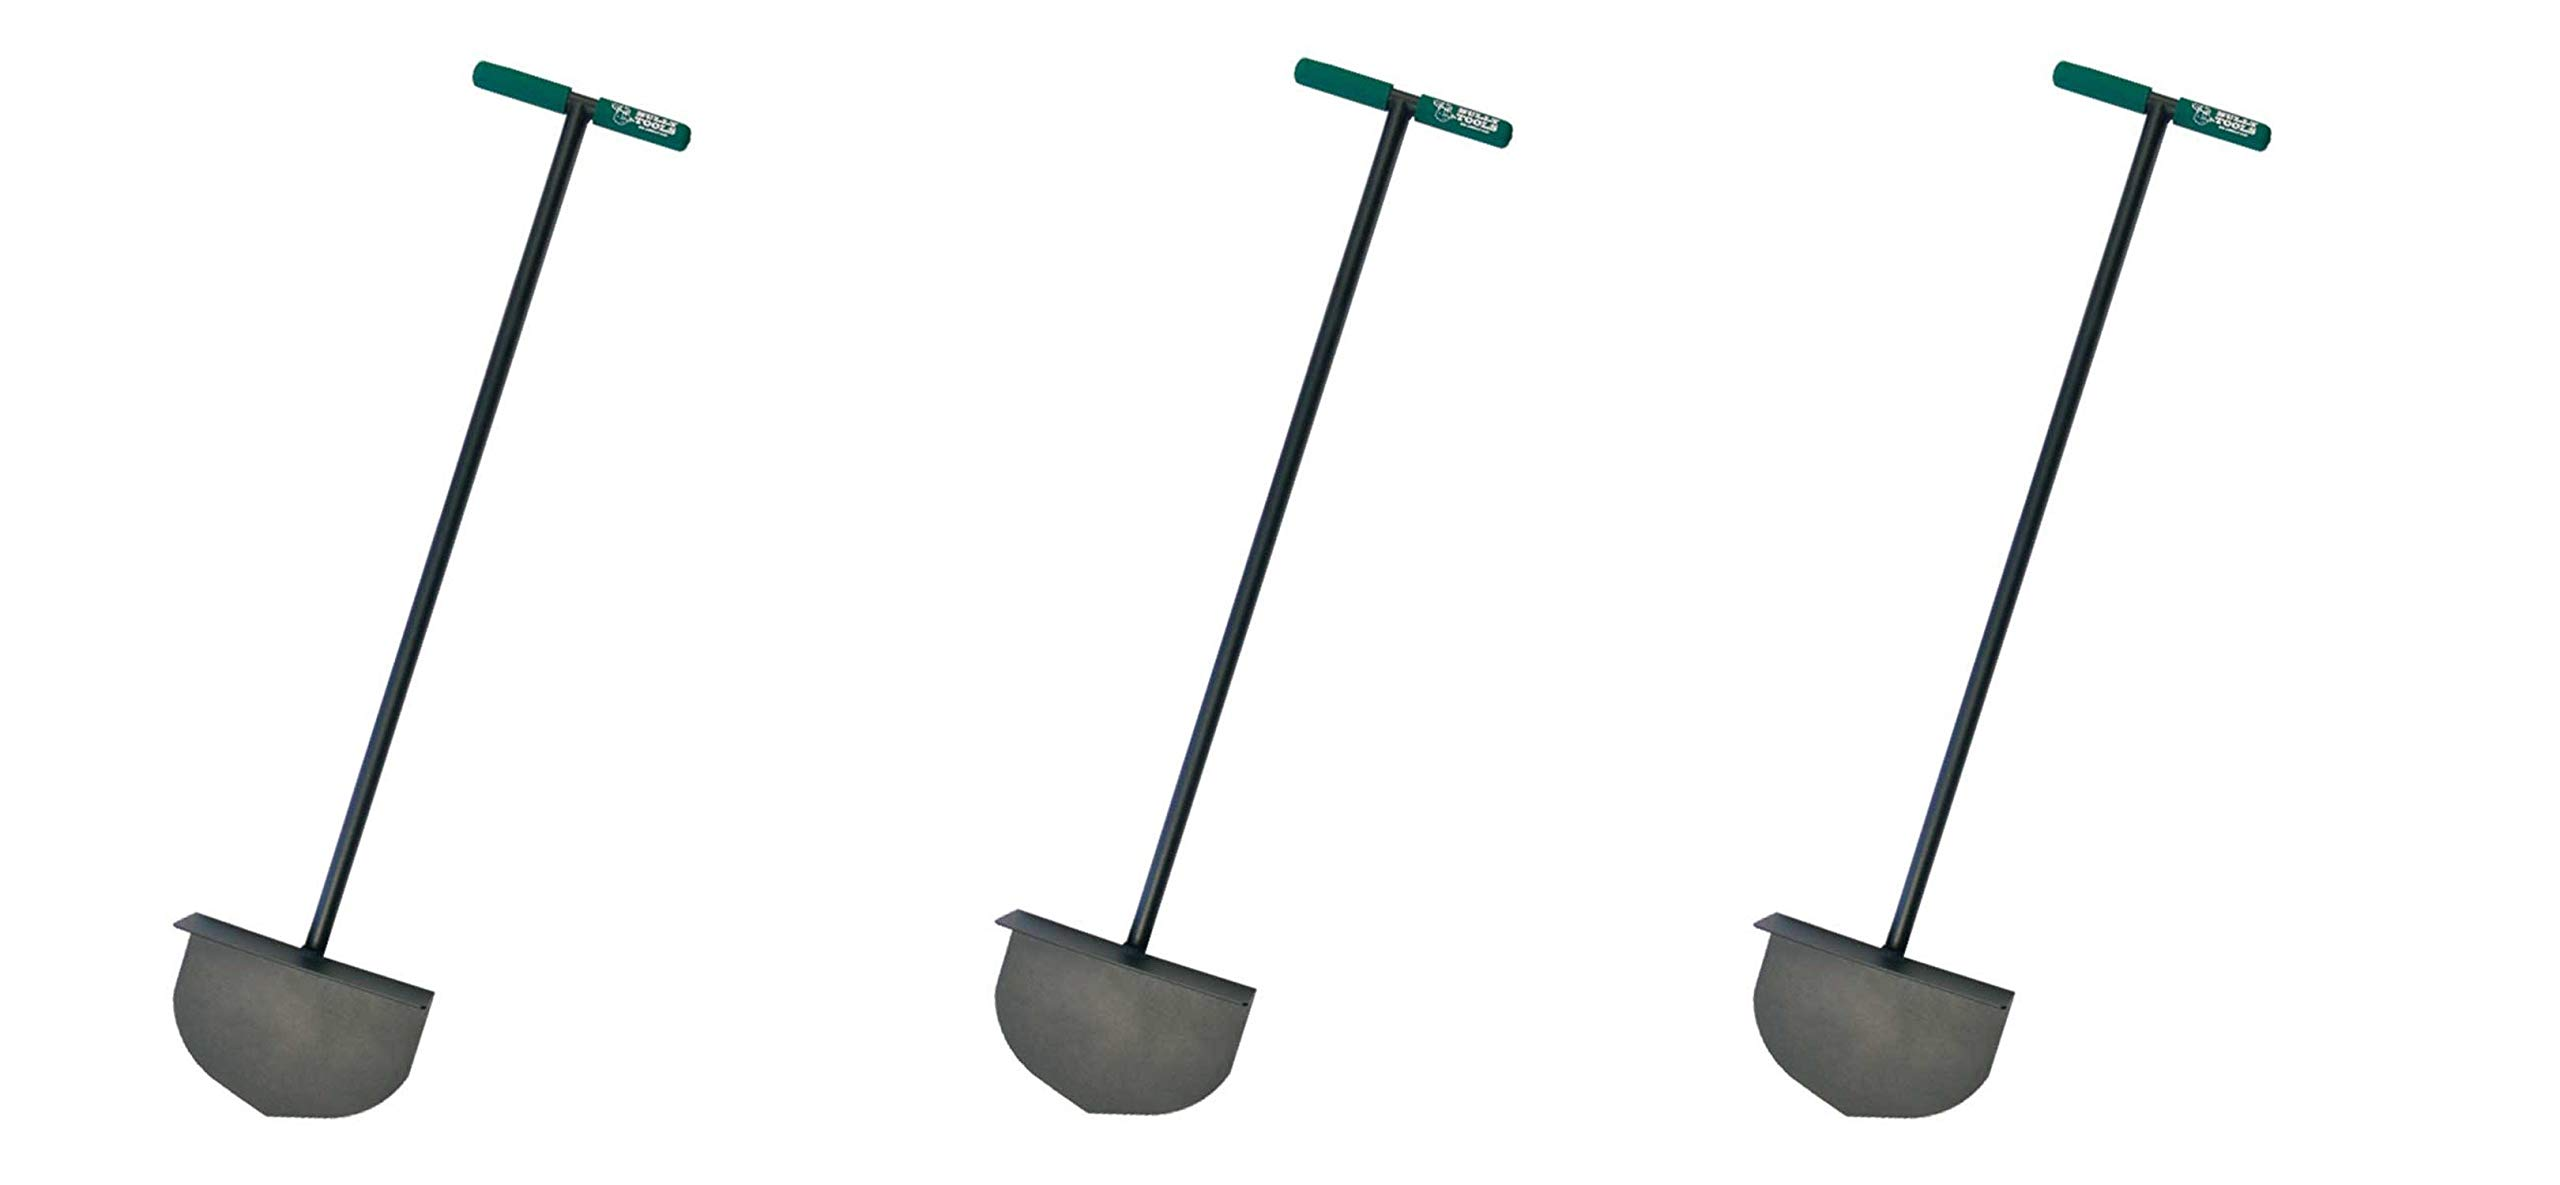 Bully Tools 92251 Round Lawn Edger with Steel T-Style Handle (Pack of 3)